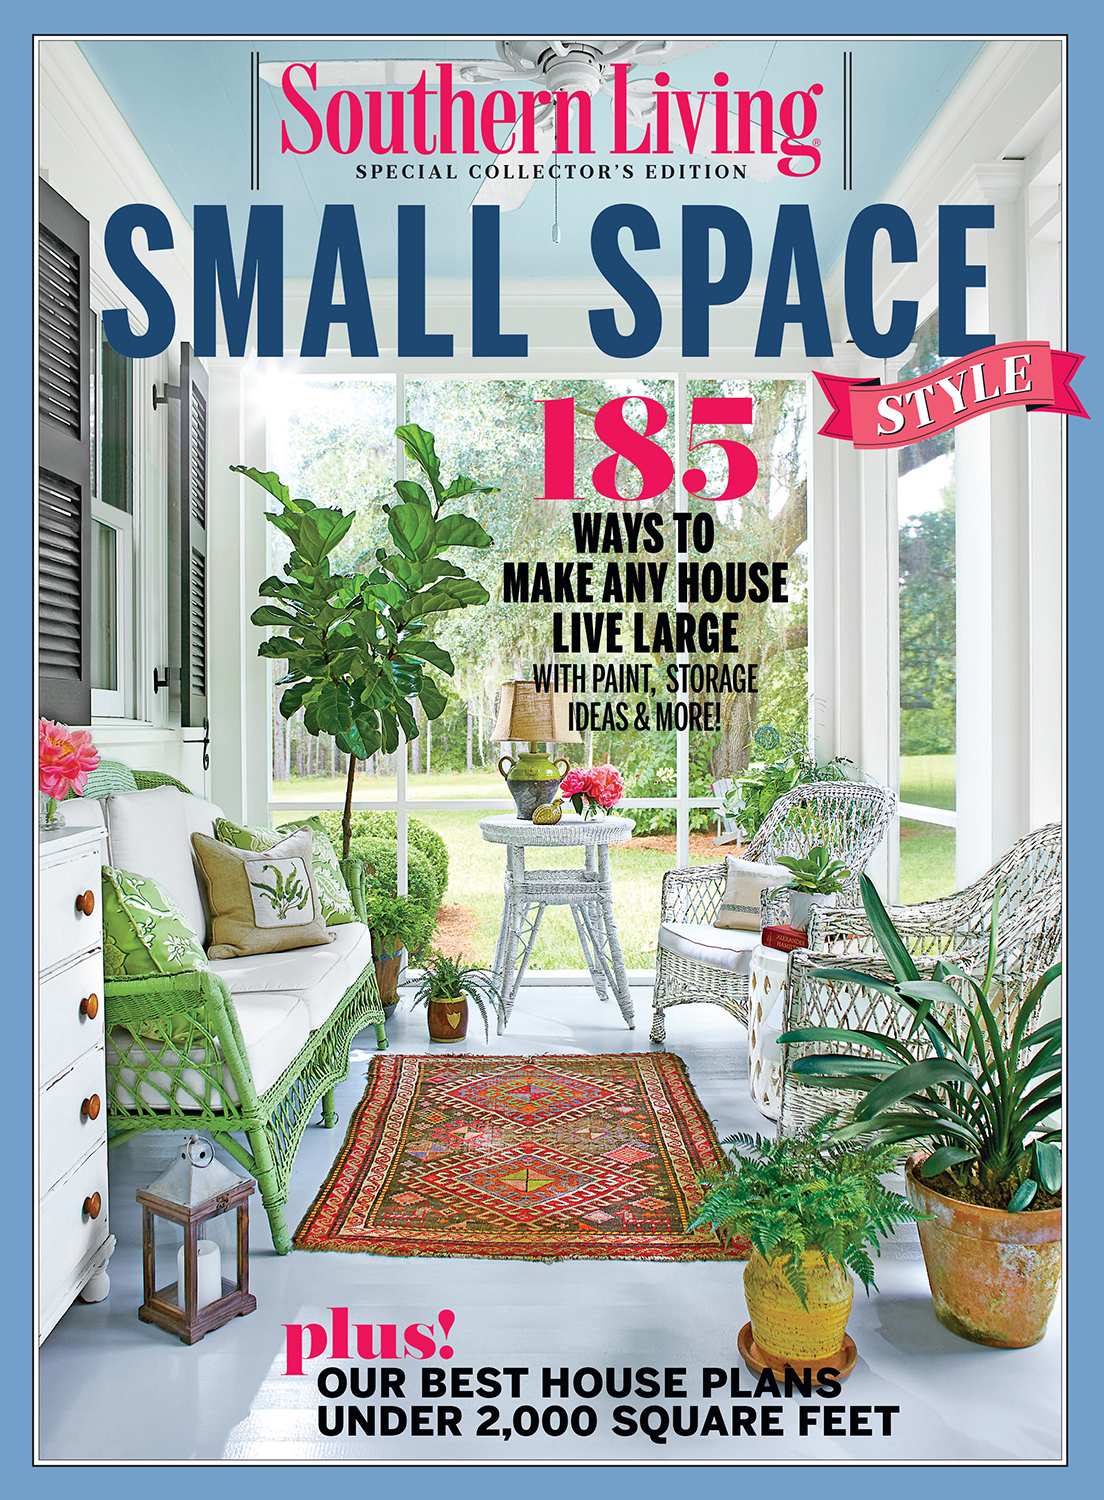 SOUTHERN LIVING Small Space Style